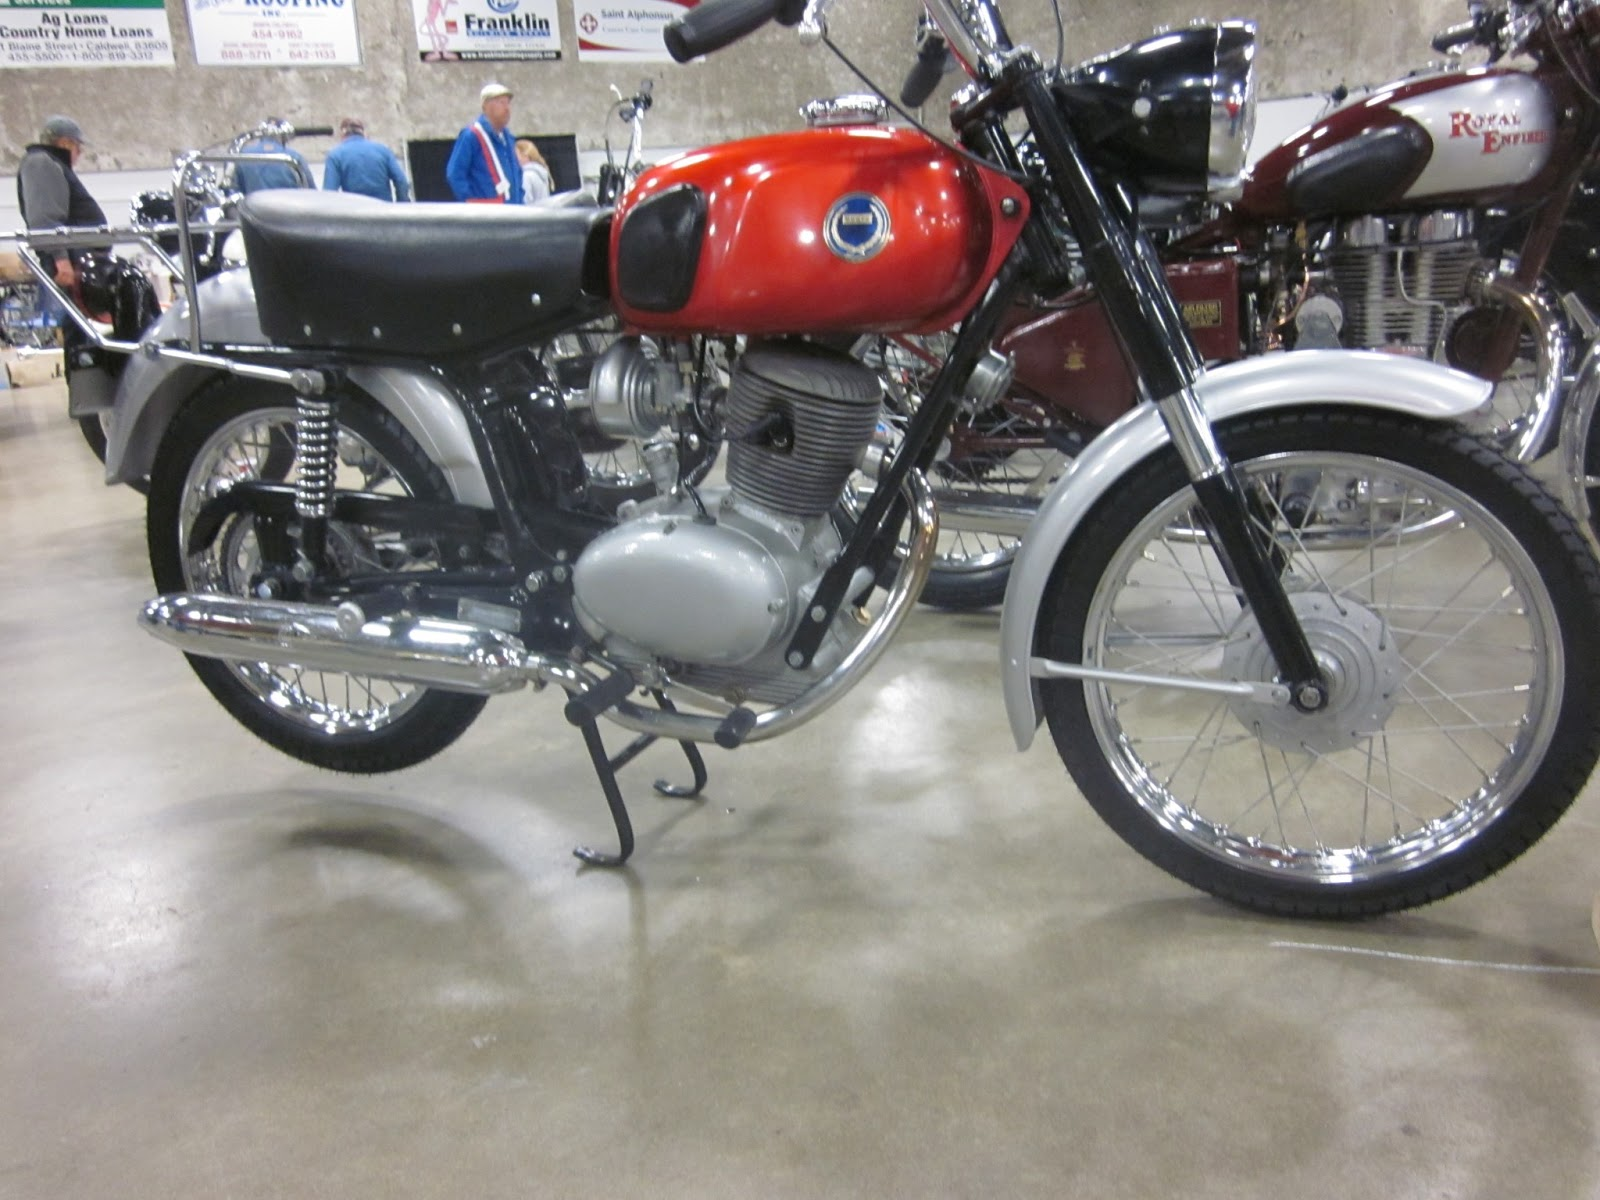 Oldmotodude 1965 sears allstate 106 ss on display at the 2013 1965 sears allstate 106 ss on display at the 2013 idaho vintage motorcycle show caldwell id sciox Gallery